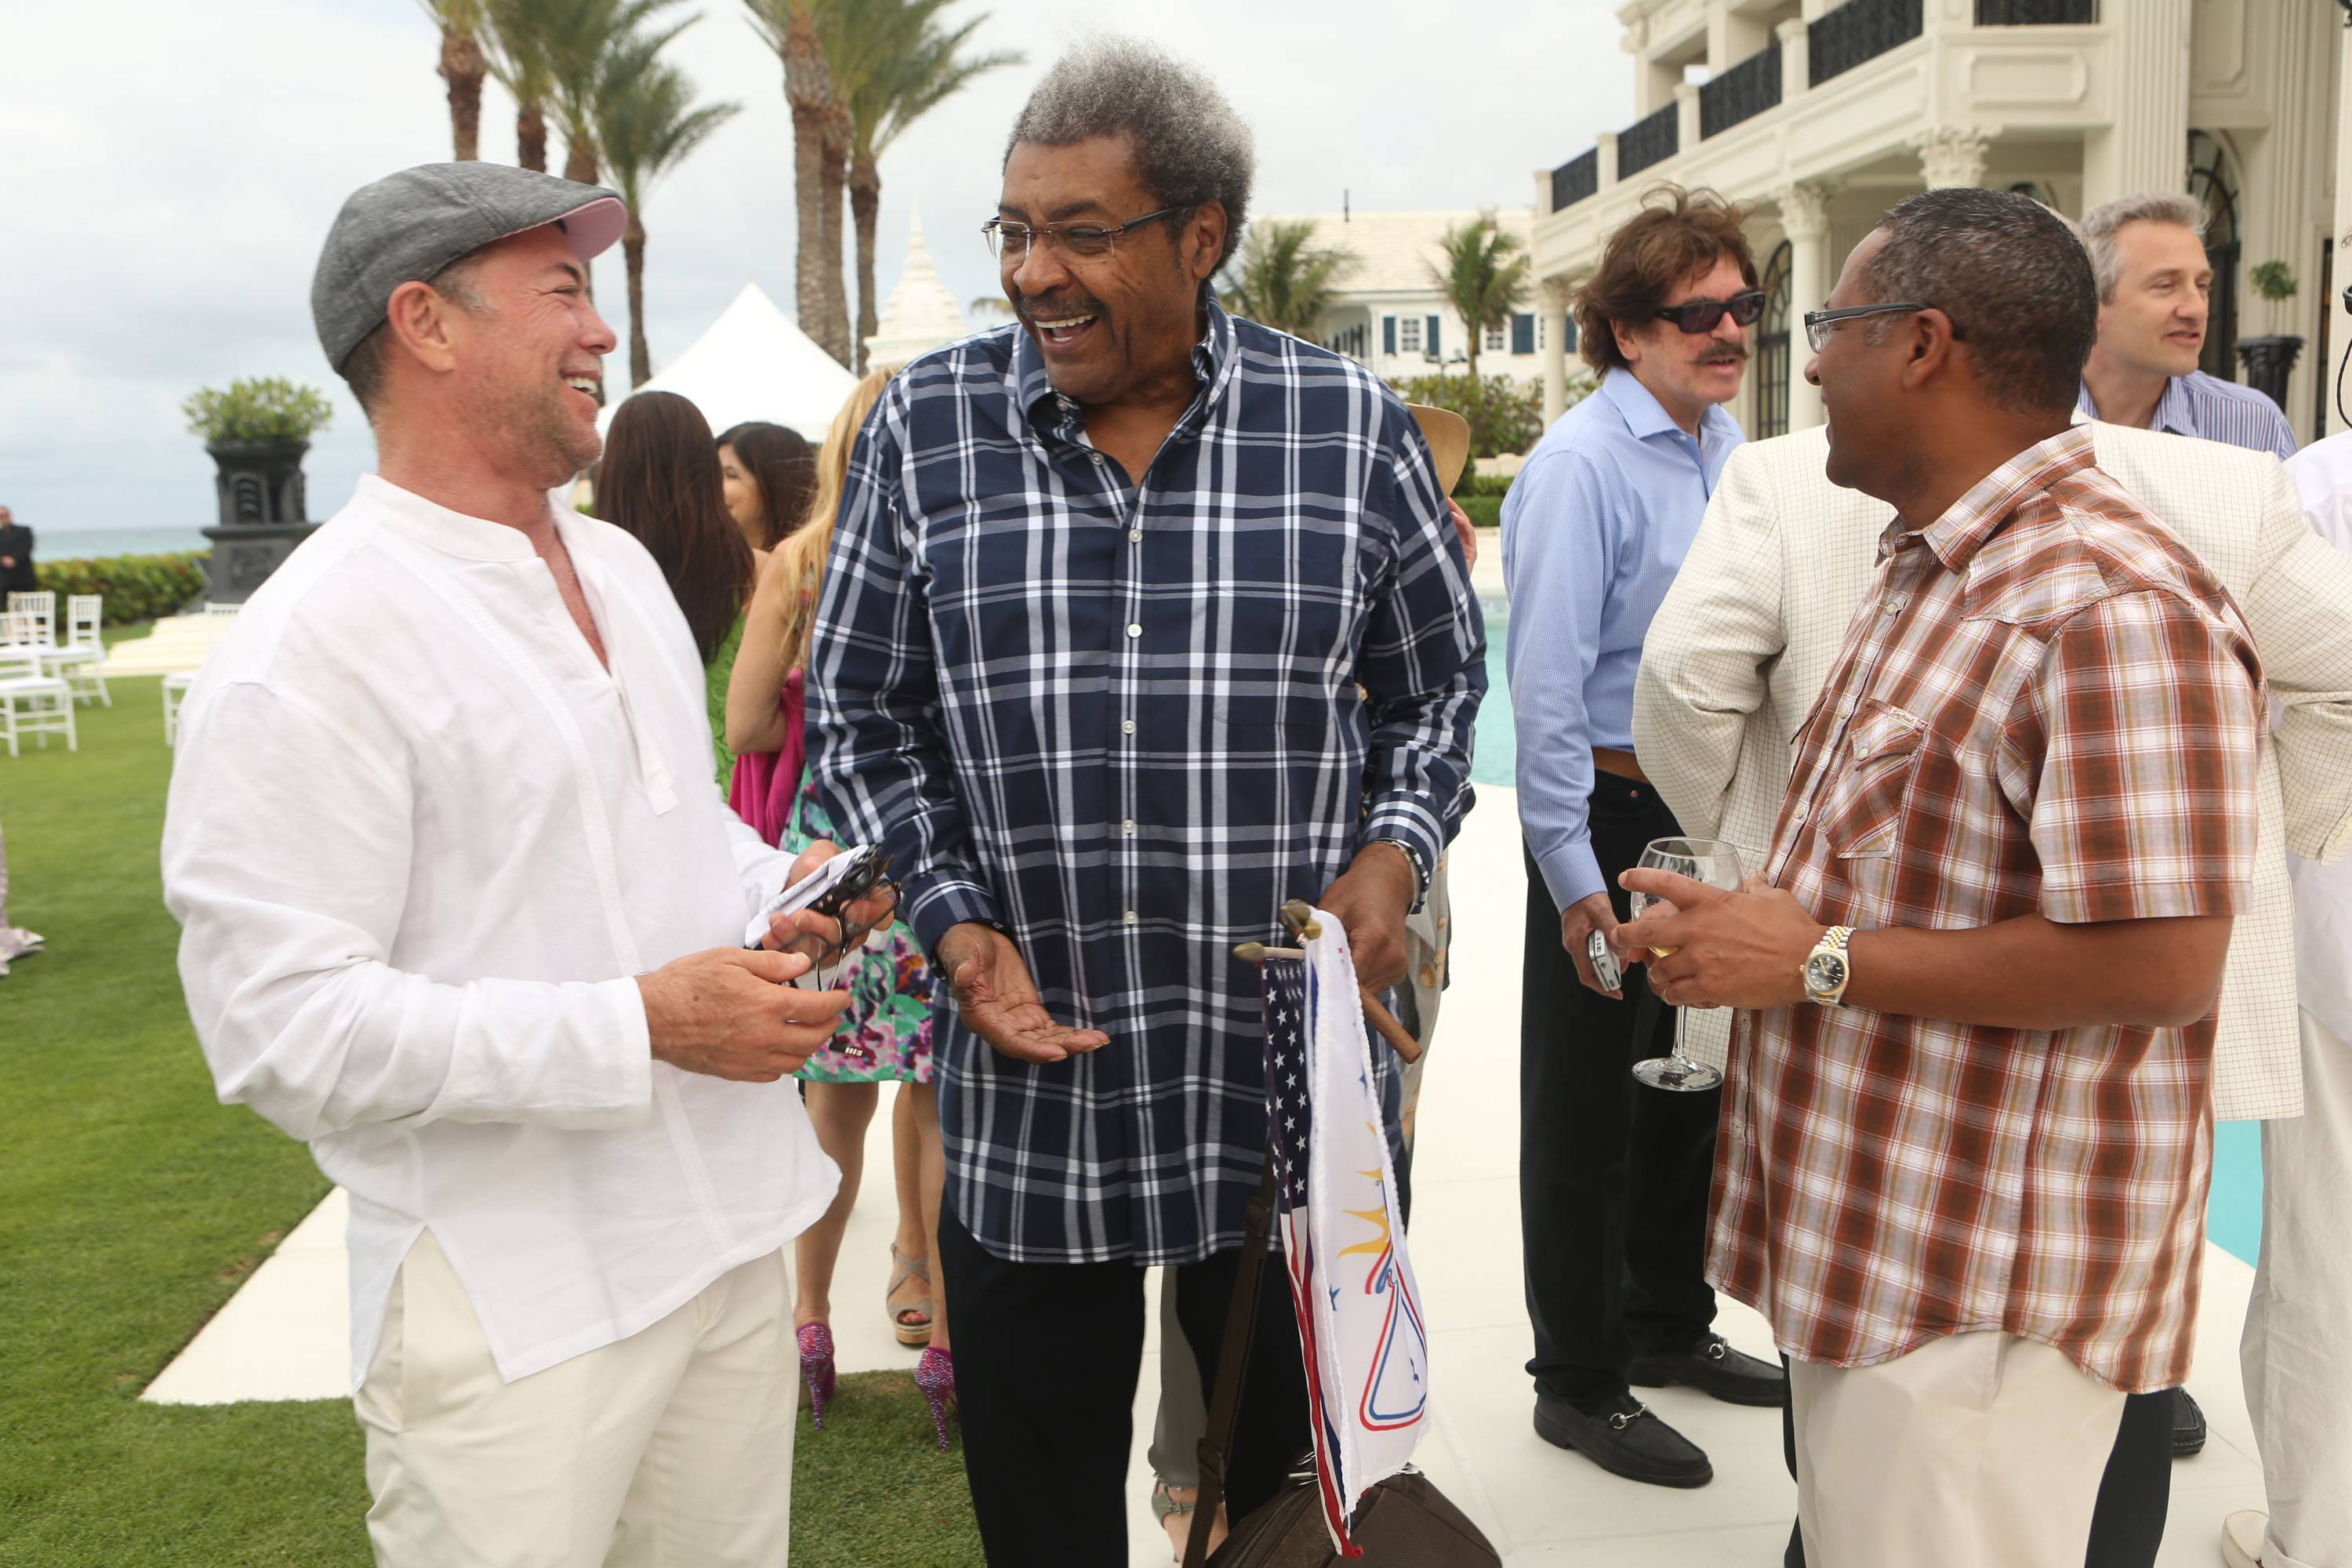 Shareef Malnik, Don King, & Norman Wedderburn